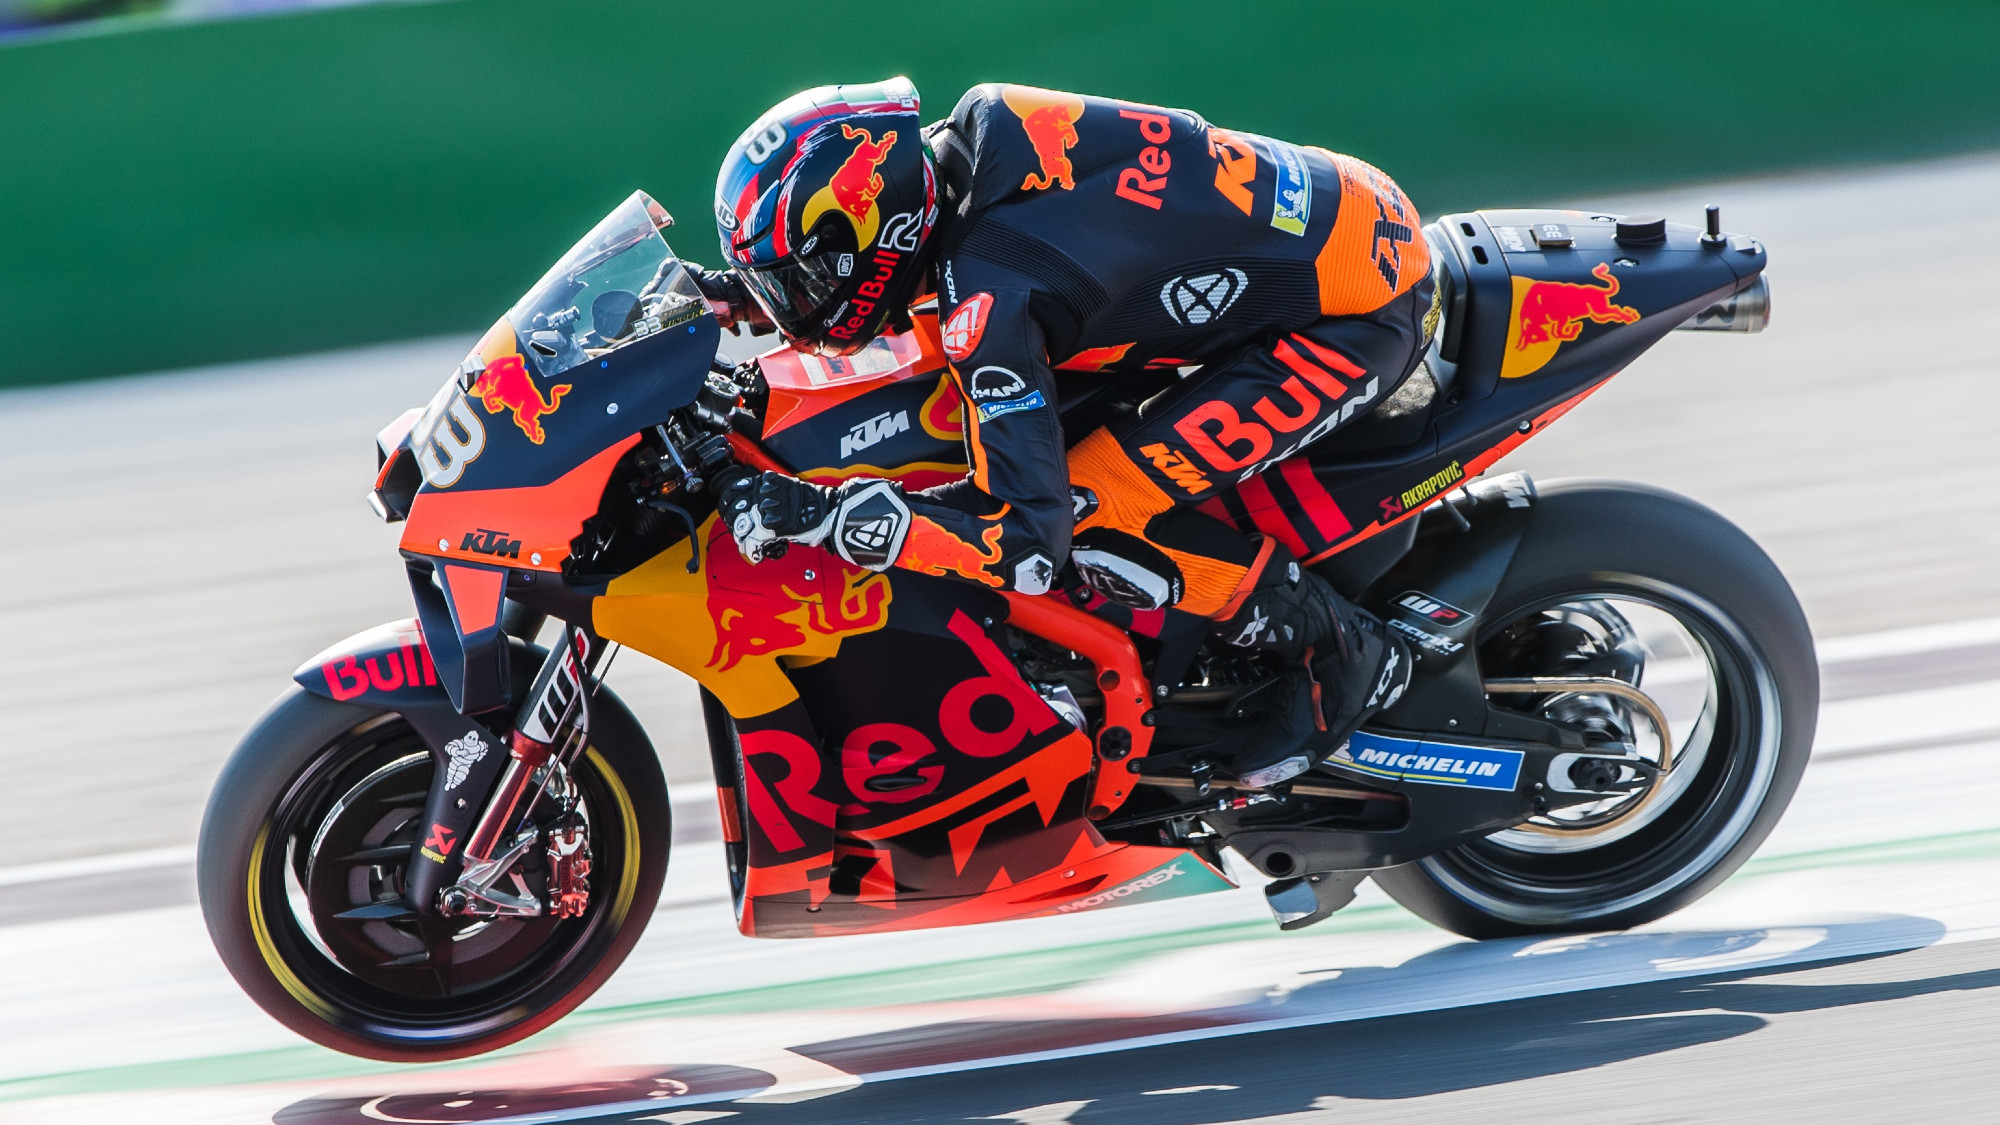 Can KTM win the 2021 MotoGP title?